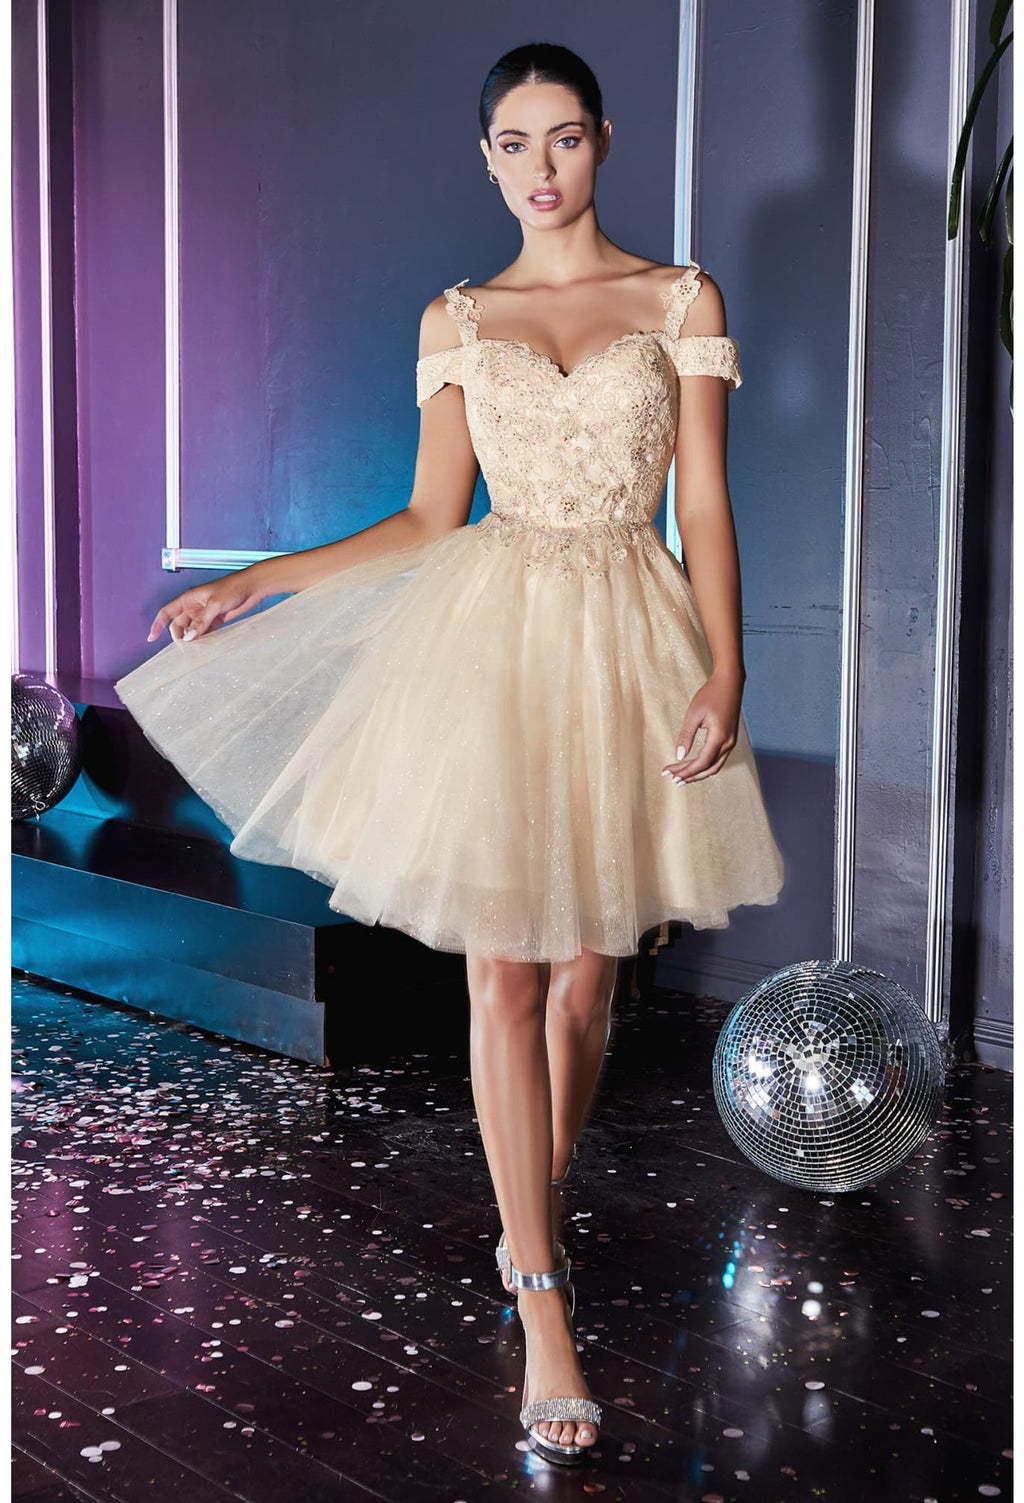 Short cocktail dress with off the shoulder lace detail and glitter tulle skirt - KC Haute Couture Wedding Dress